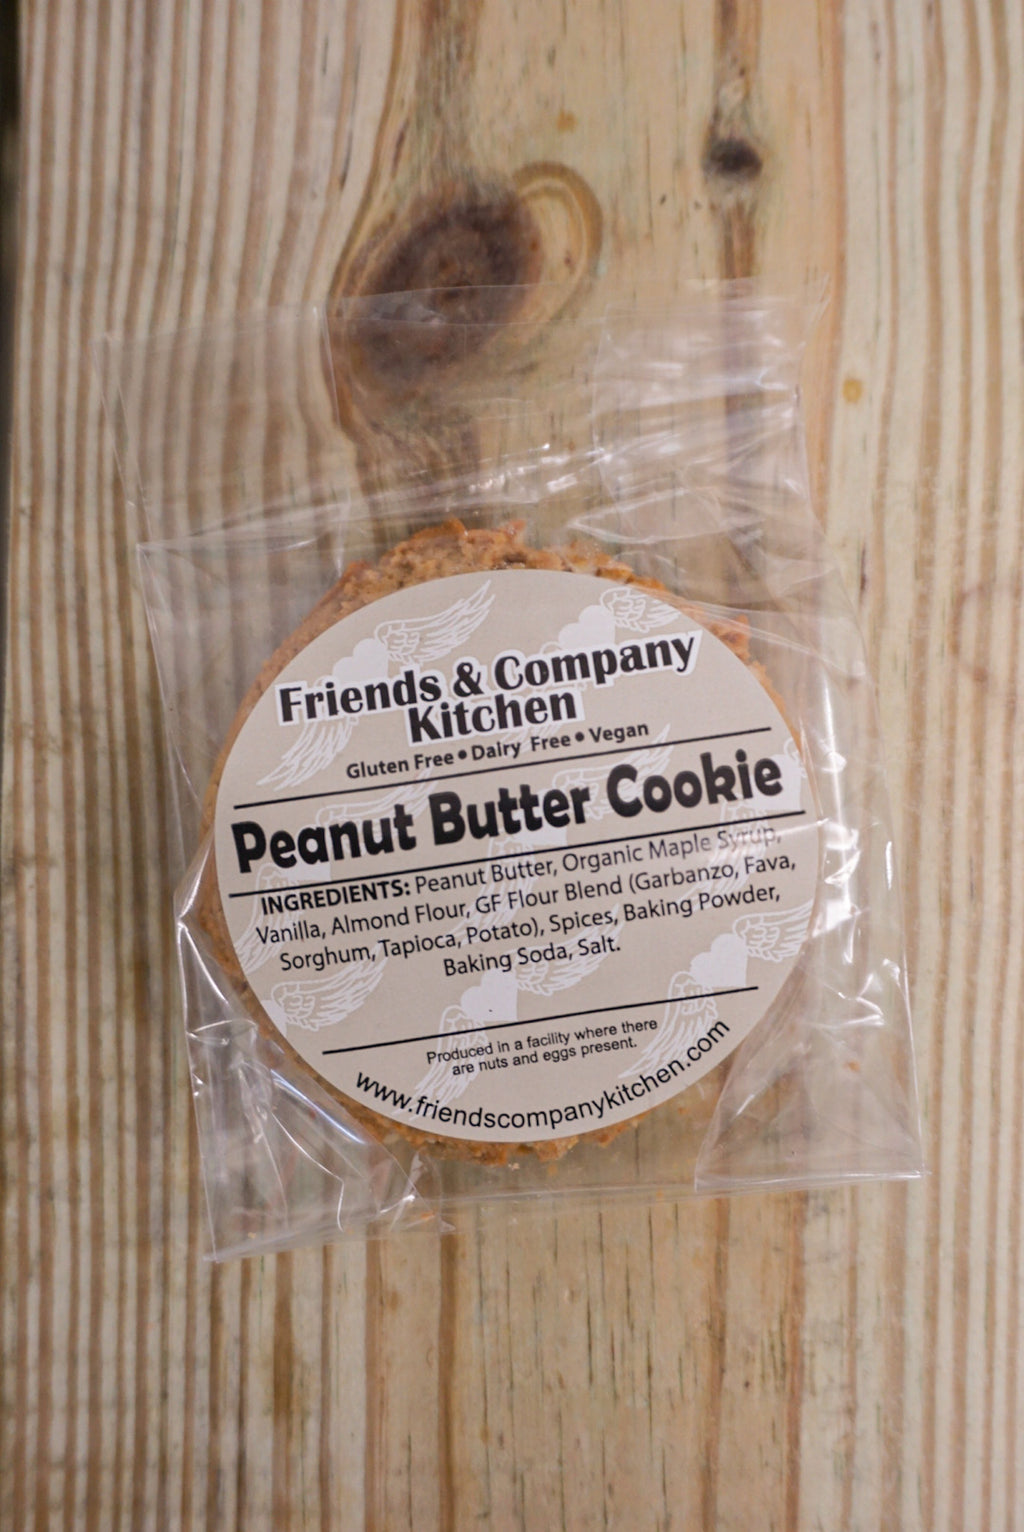 Friends & Company Kitchen Peanut Butter Cookie - New Canaan